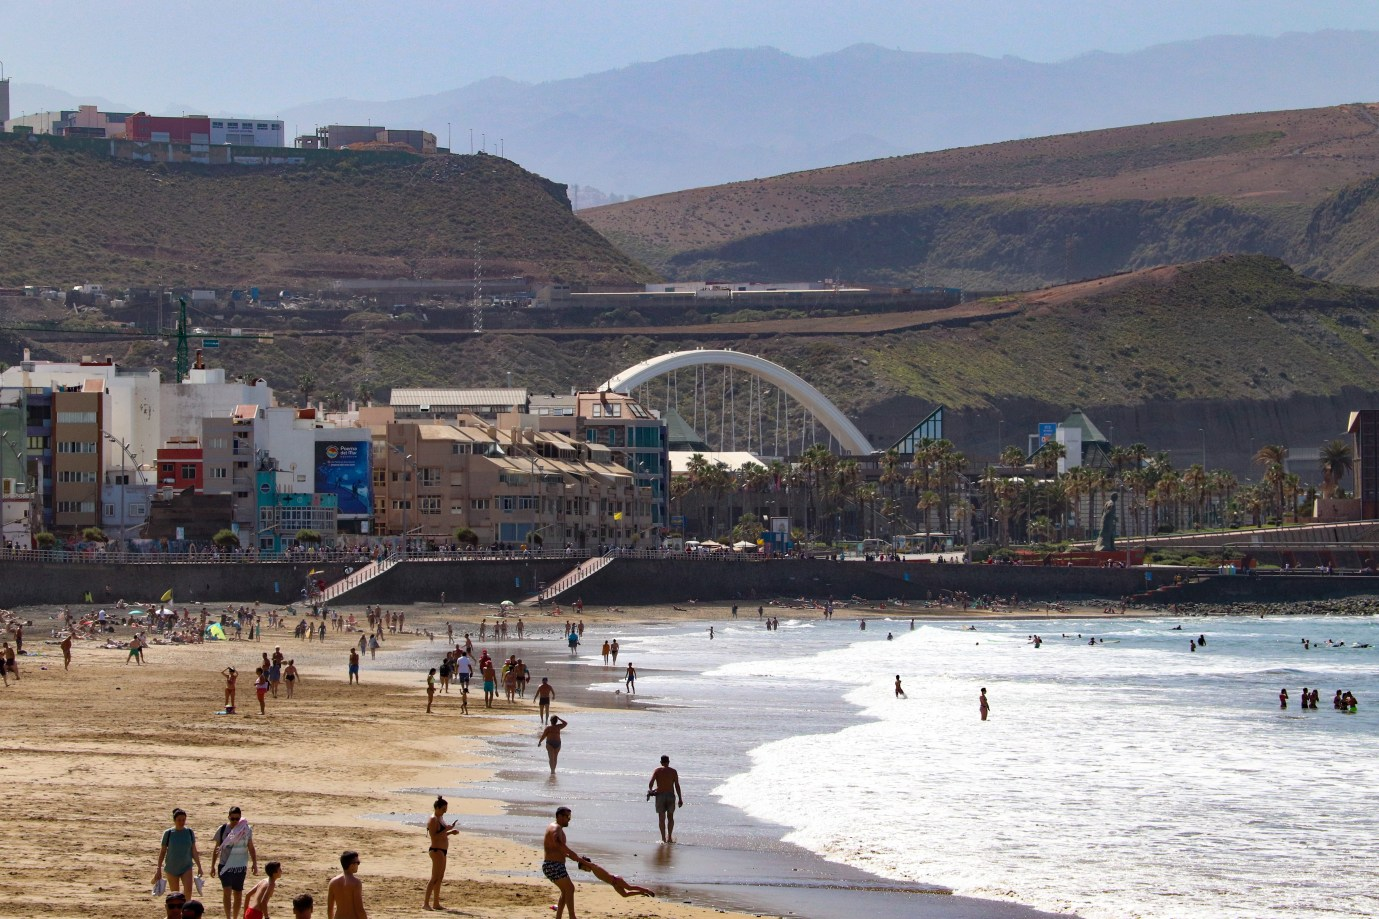 A view of the Playa de Las Canteras with the mountains of Gran Canaria visible in the distance.